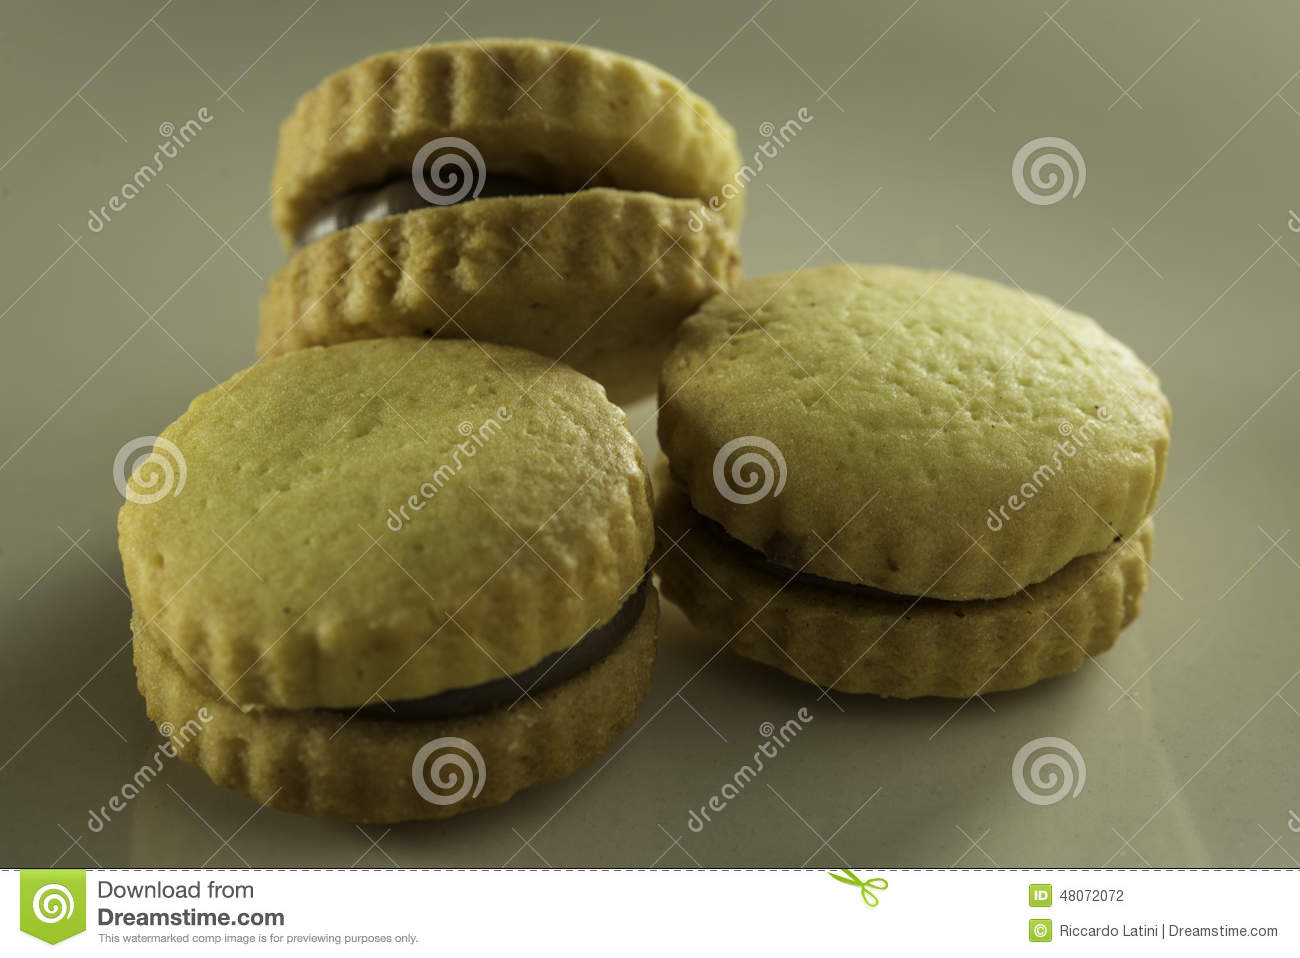 Filled biscuits stock photo. Image of shop, sweet, festivity